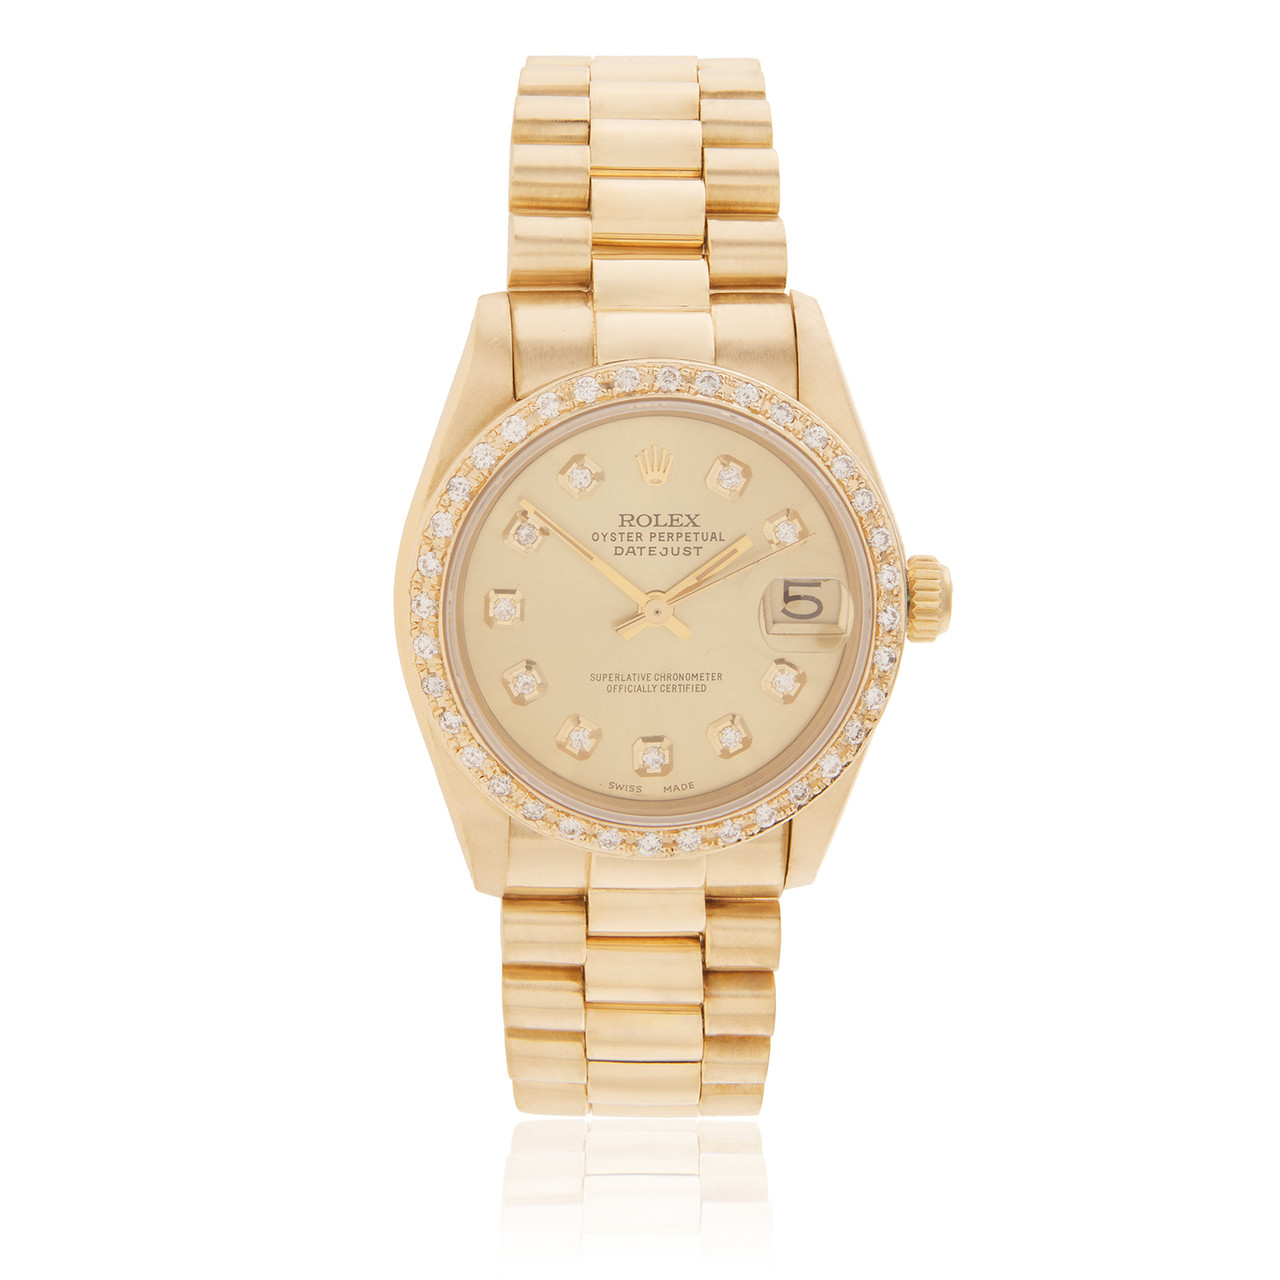 Rolex Lady Datejust 18k Yellow Gold President 1 5ct Diamond Bezel Automatic Women S Watch Shyne Jewelers